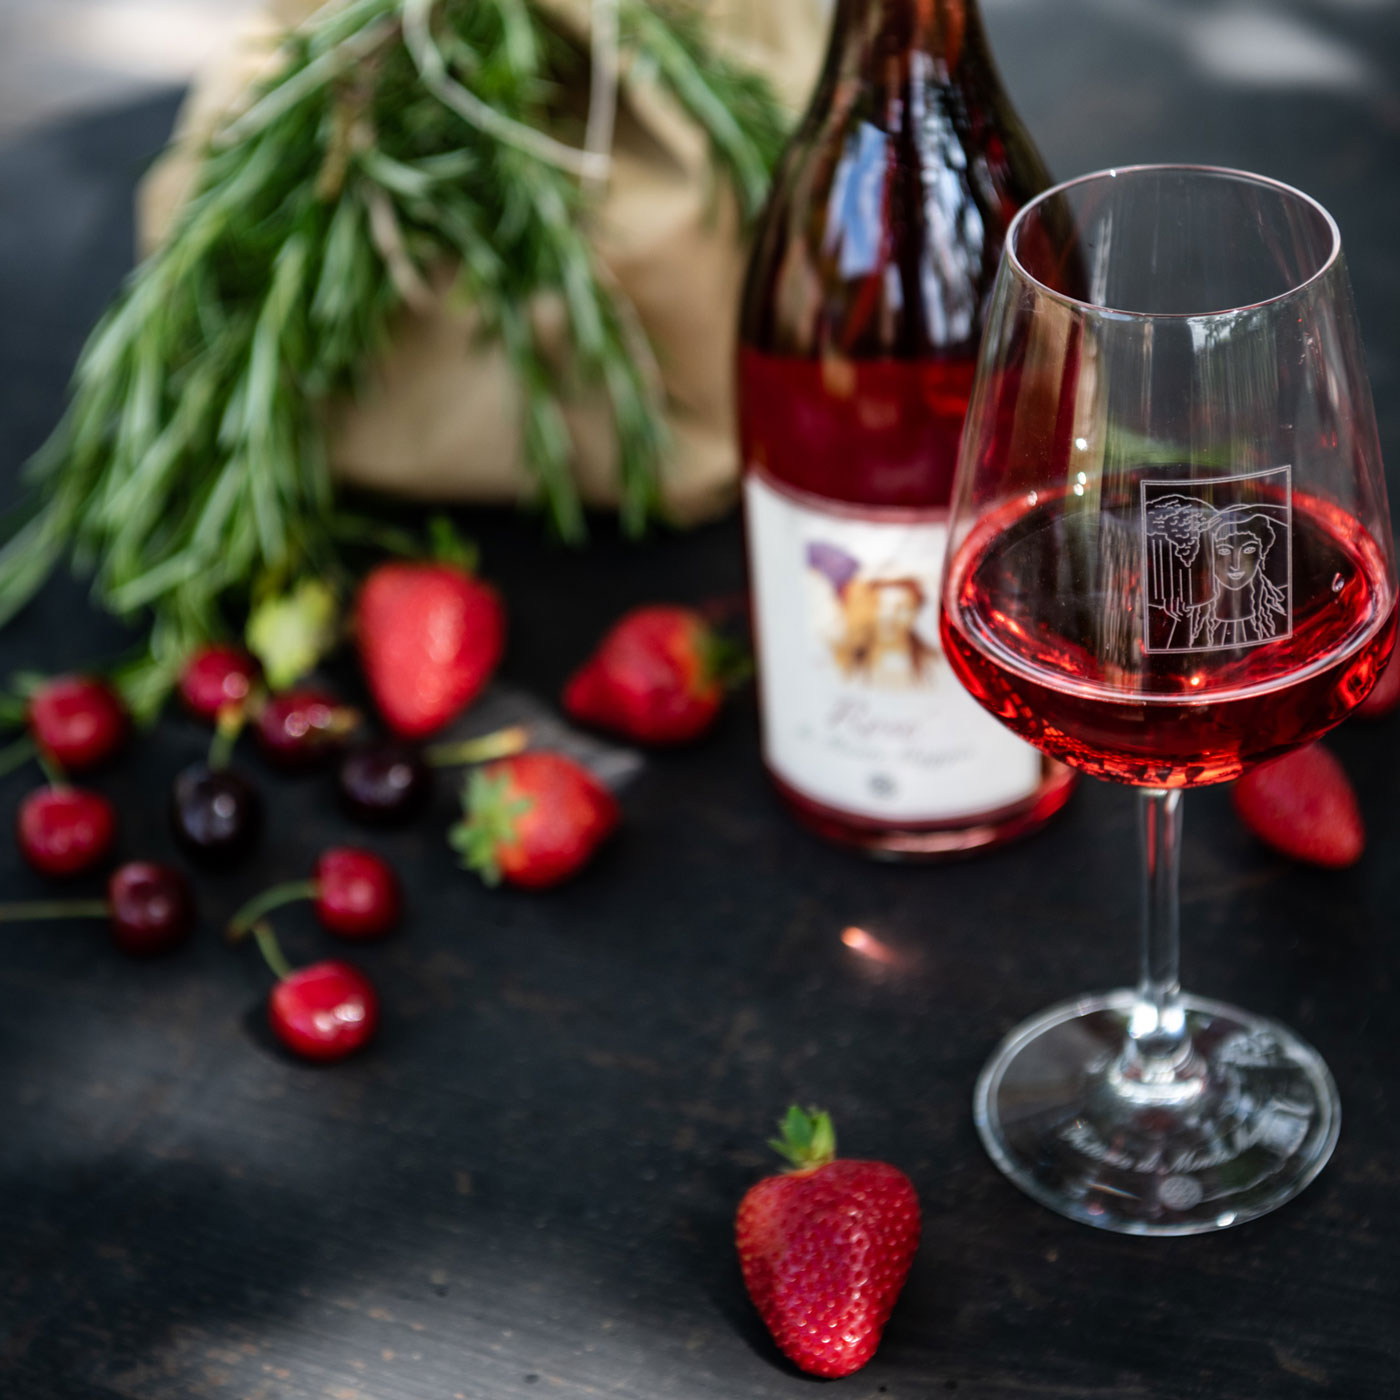 Rosé di Montemaggio has a fresh, light, dry and balanced palate